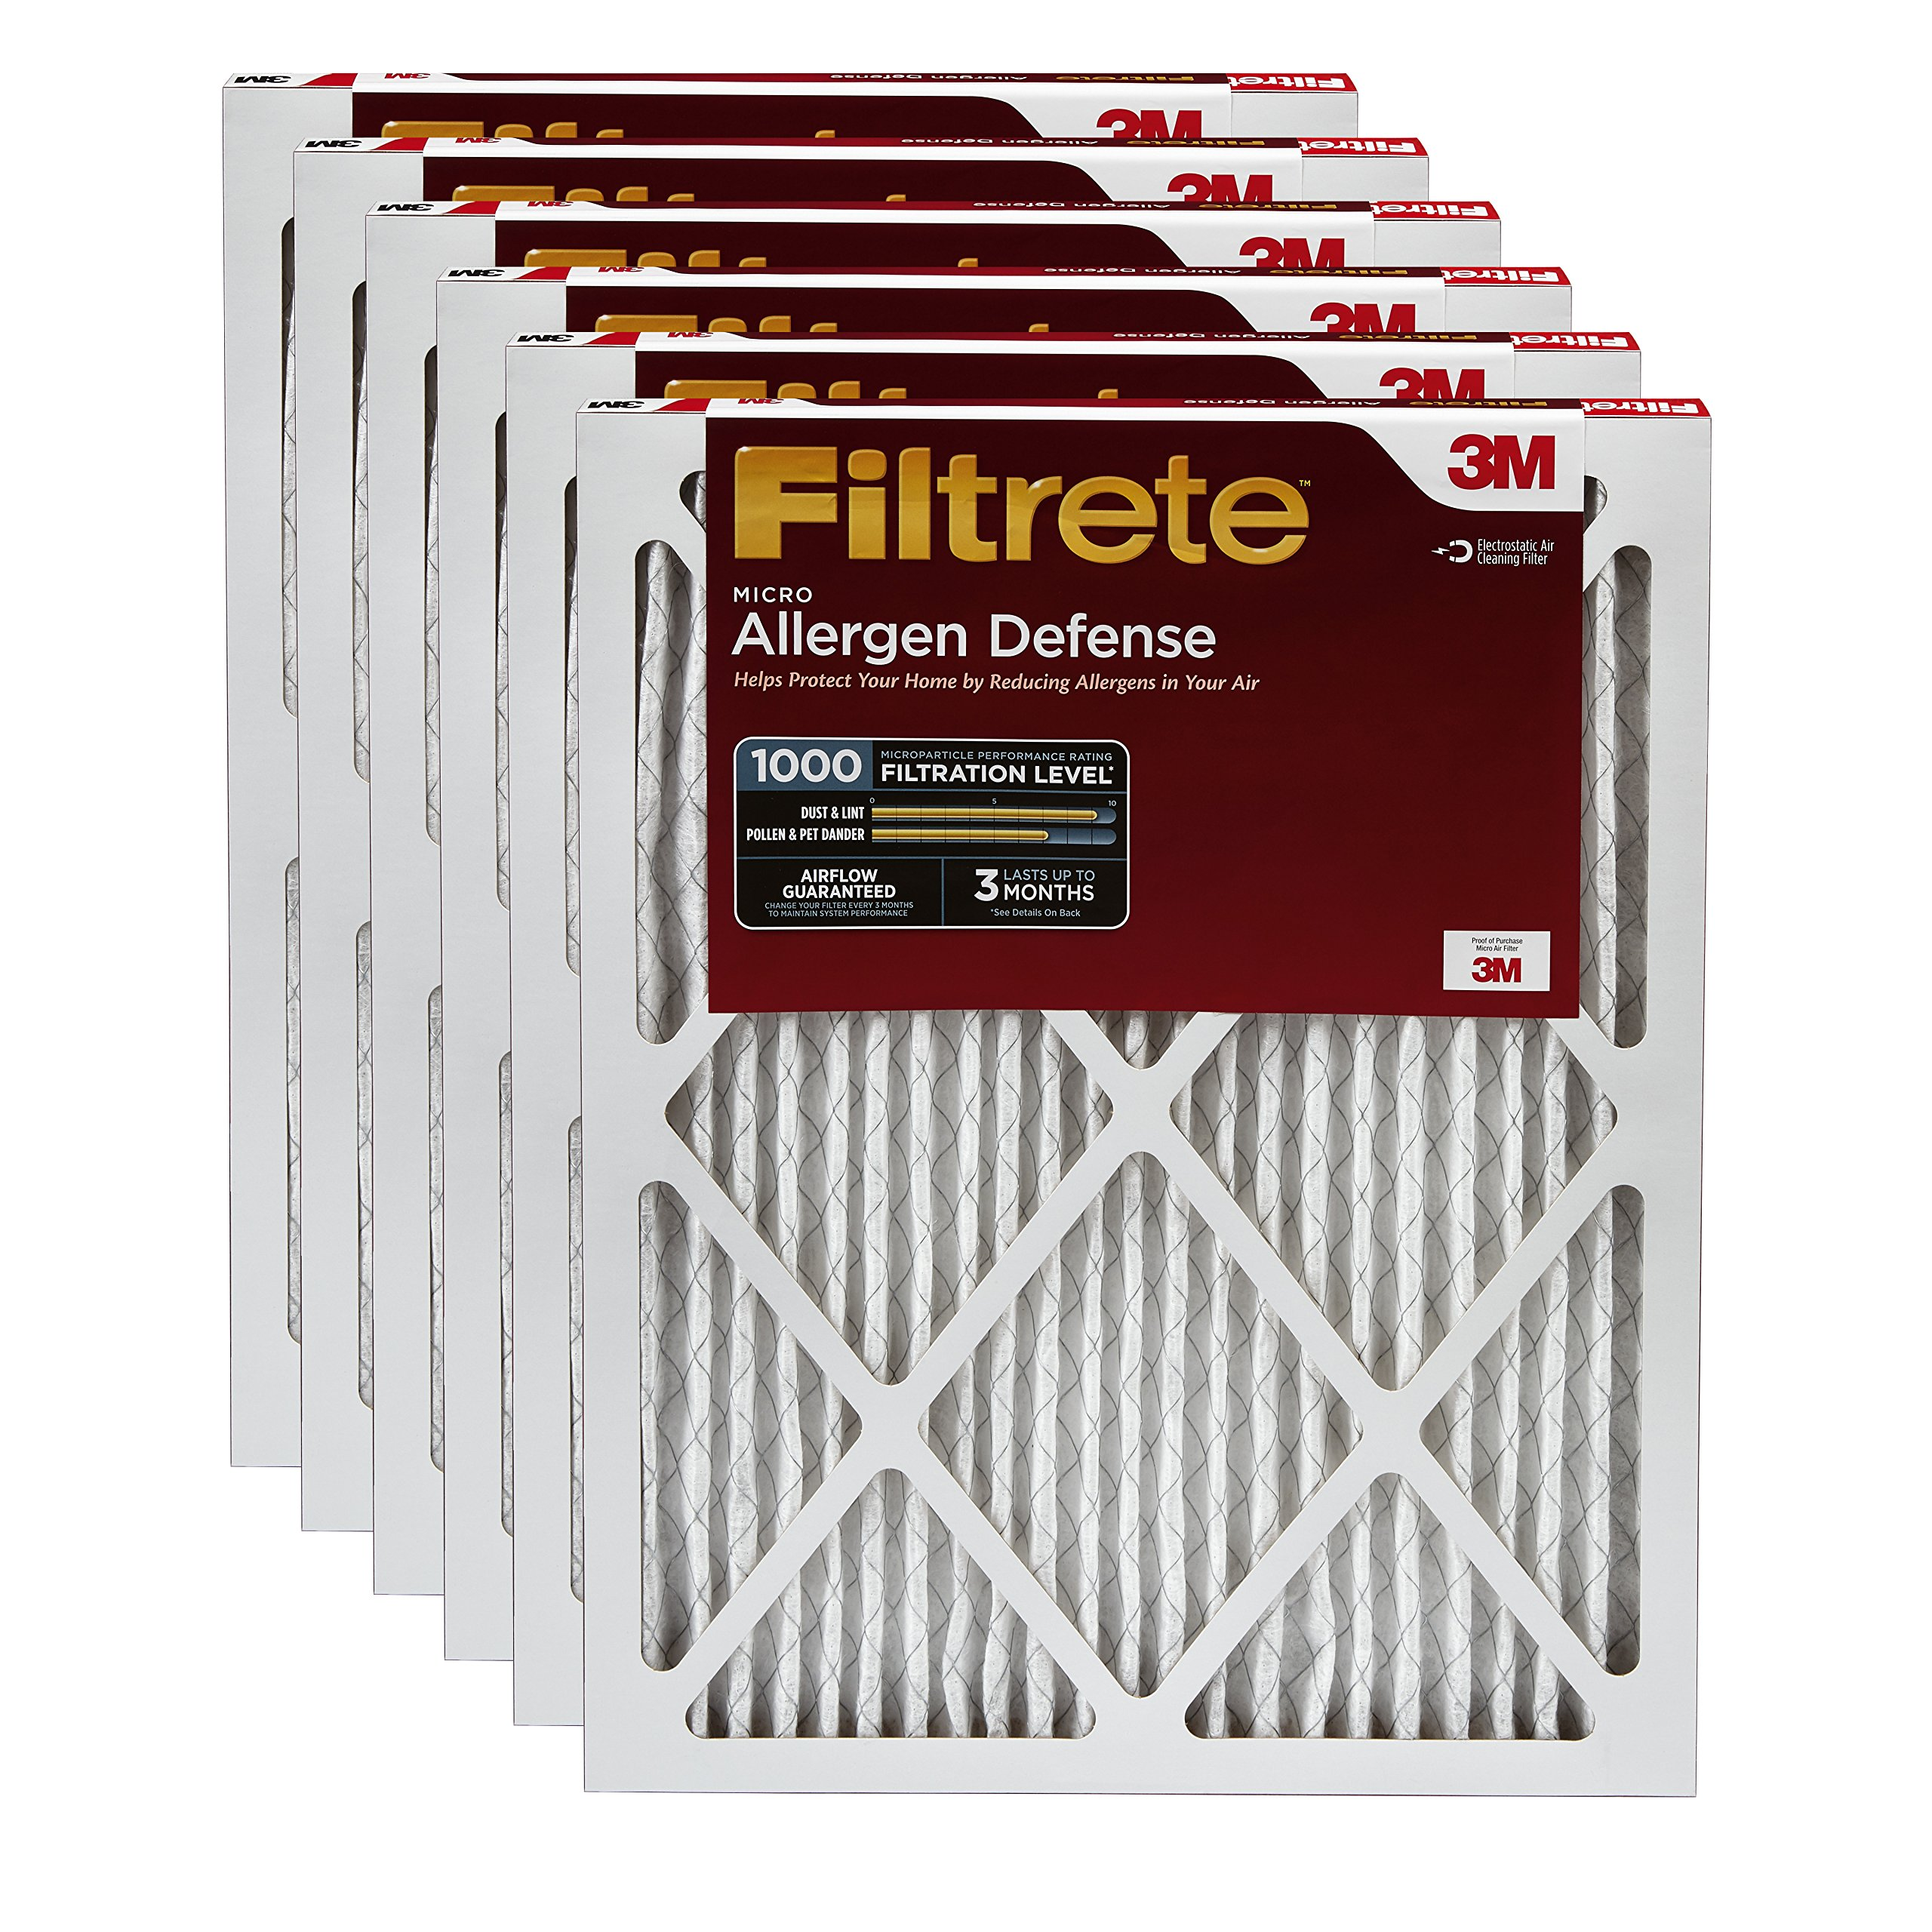 Filtrete MPR 1000 14 x 14 x 1 Micro Allergen Defense AC Furnace Air Filter, Captures Small Particles like Pollen & Pet Dander, 6-Pack